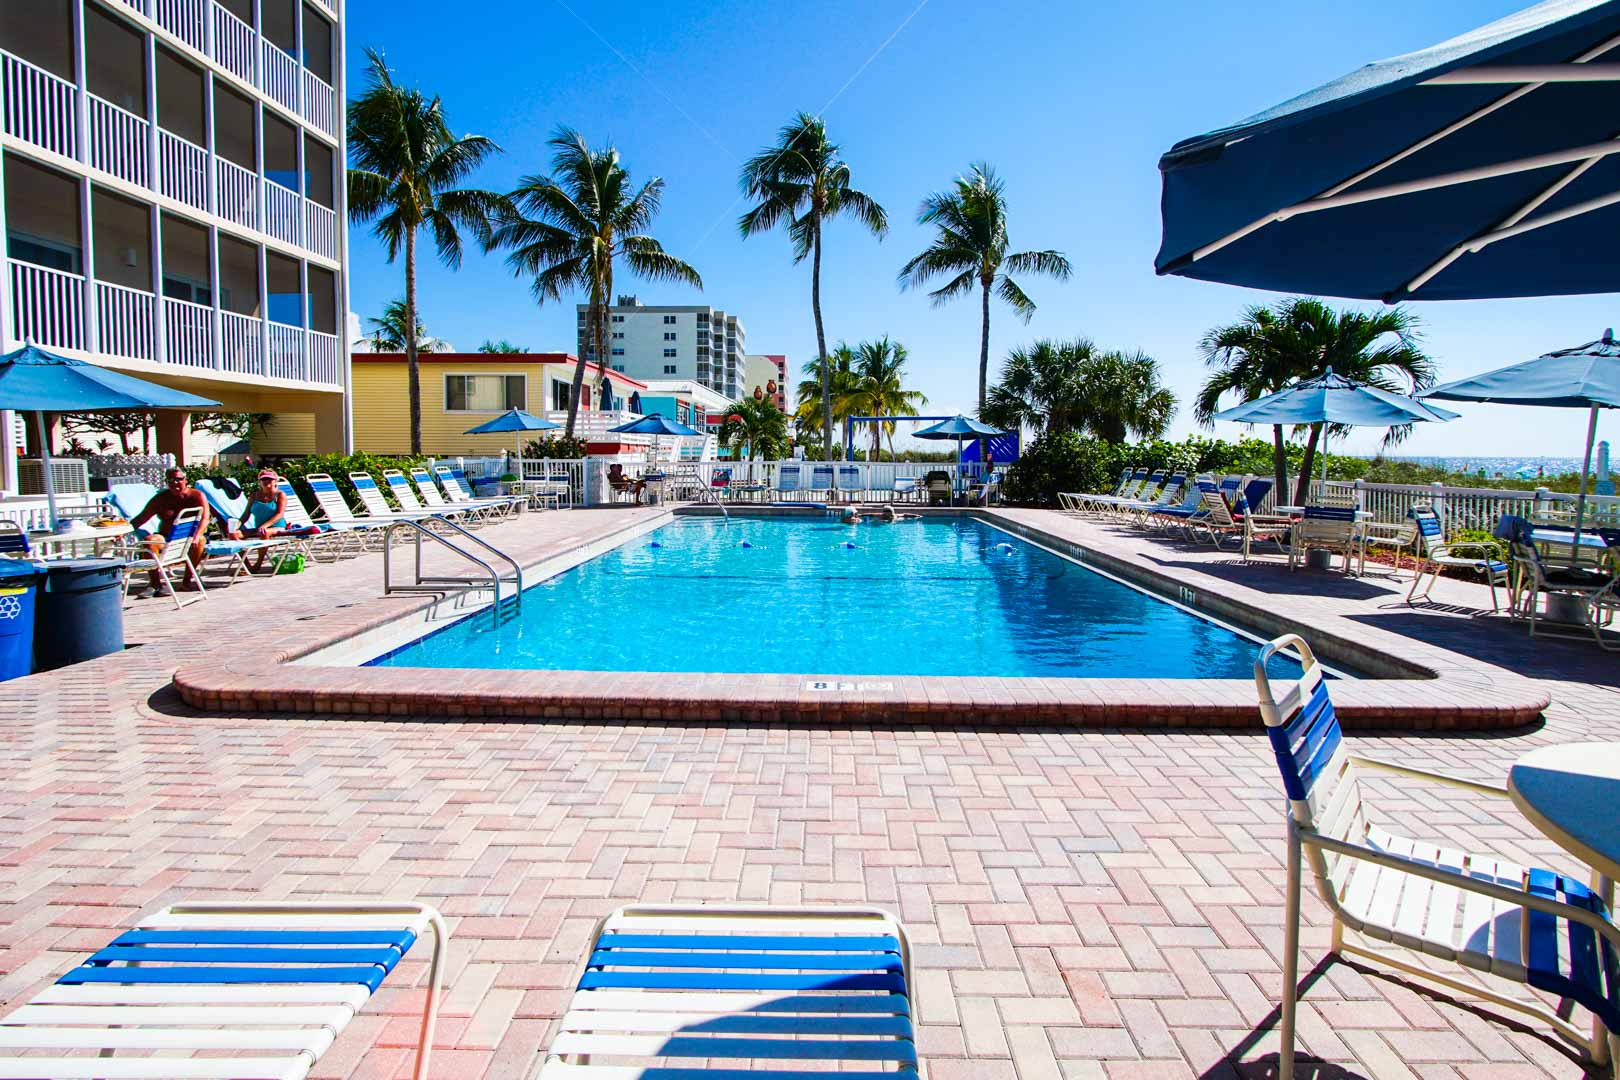 A clean crisp pool at VRI's Windward Passage Resort in Fort Myers Beach, Florida.